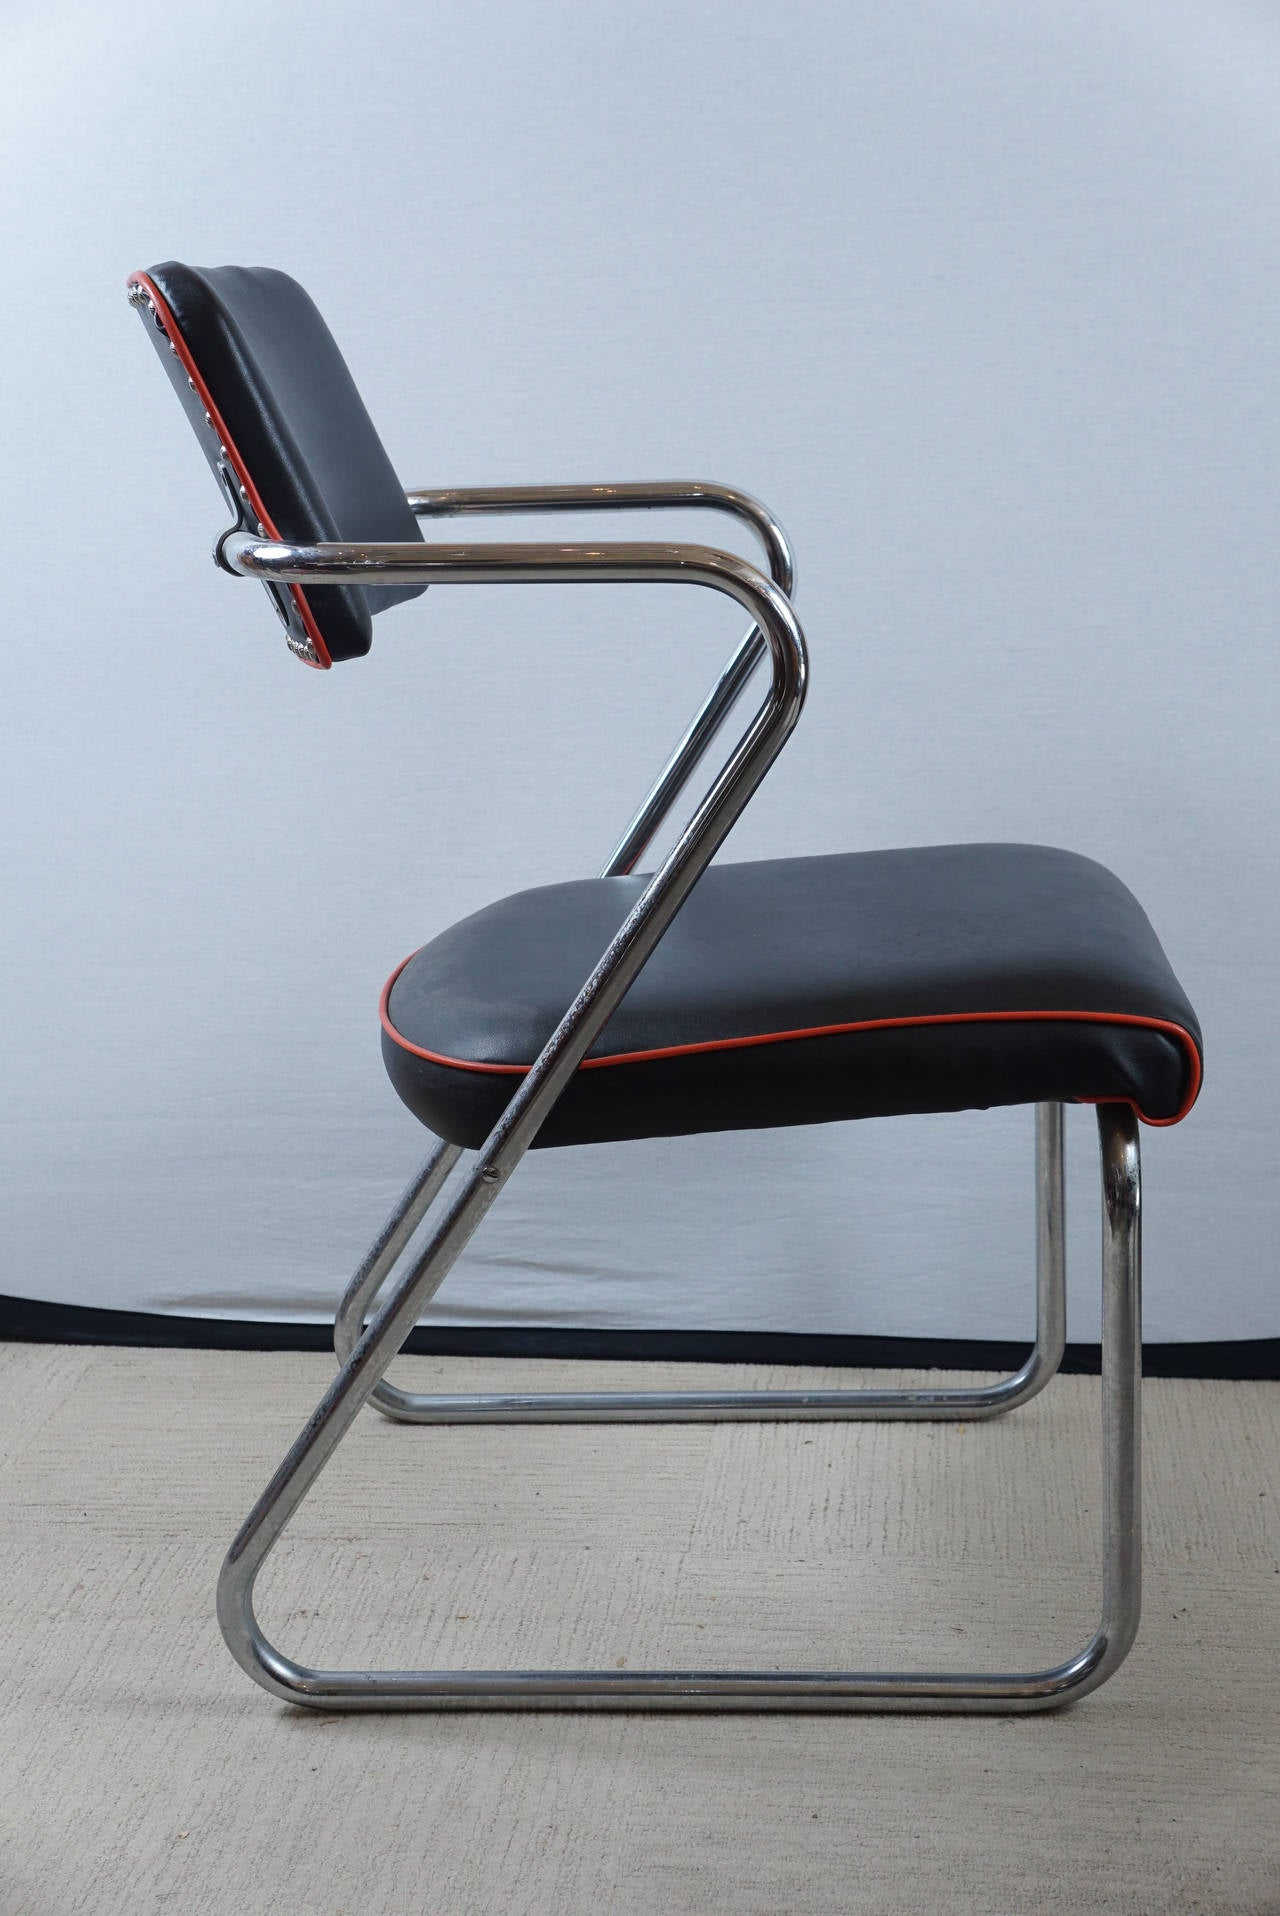 Z Chairs Sale Pair Of Royalchrome Z Chairs By Gilbert Rohde For Royal